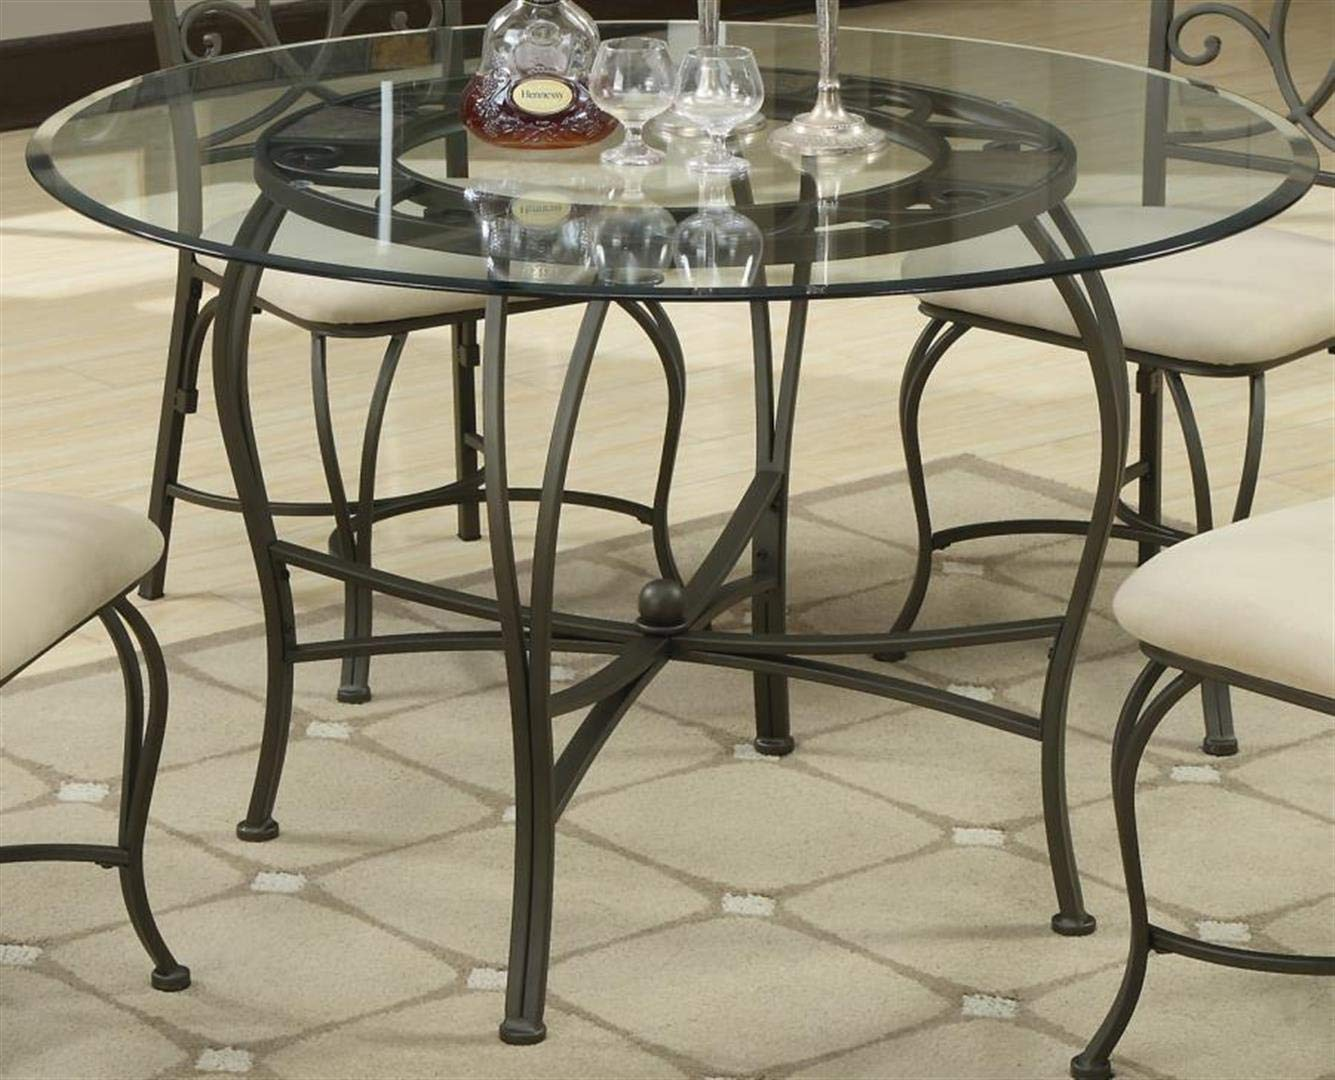 Coaster Home Furnishings Round Glass Top with 1'' Bevel Clear Tempered by Coaster Home Furnishings (Image #3)